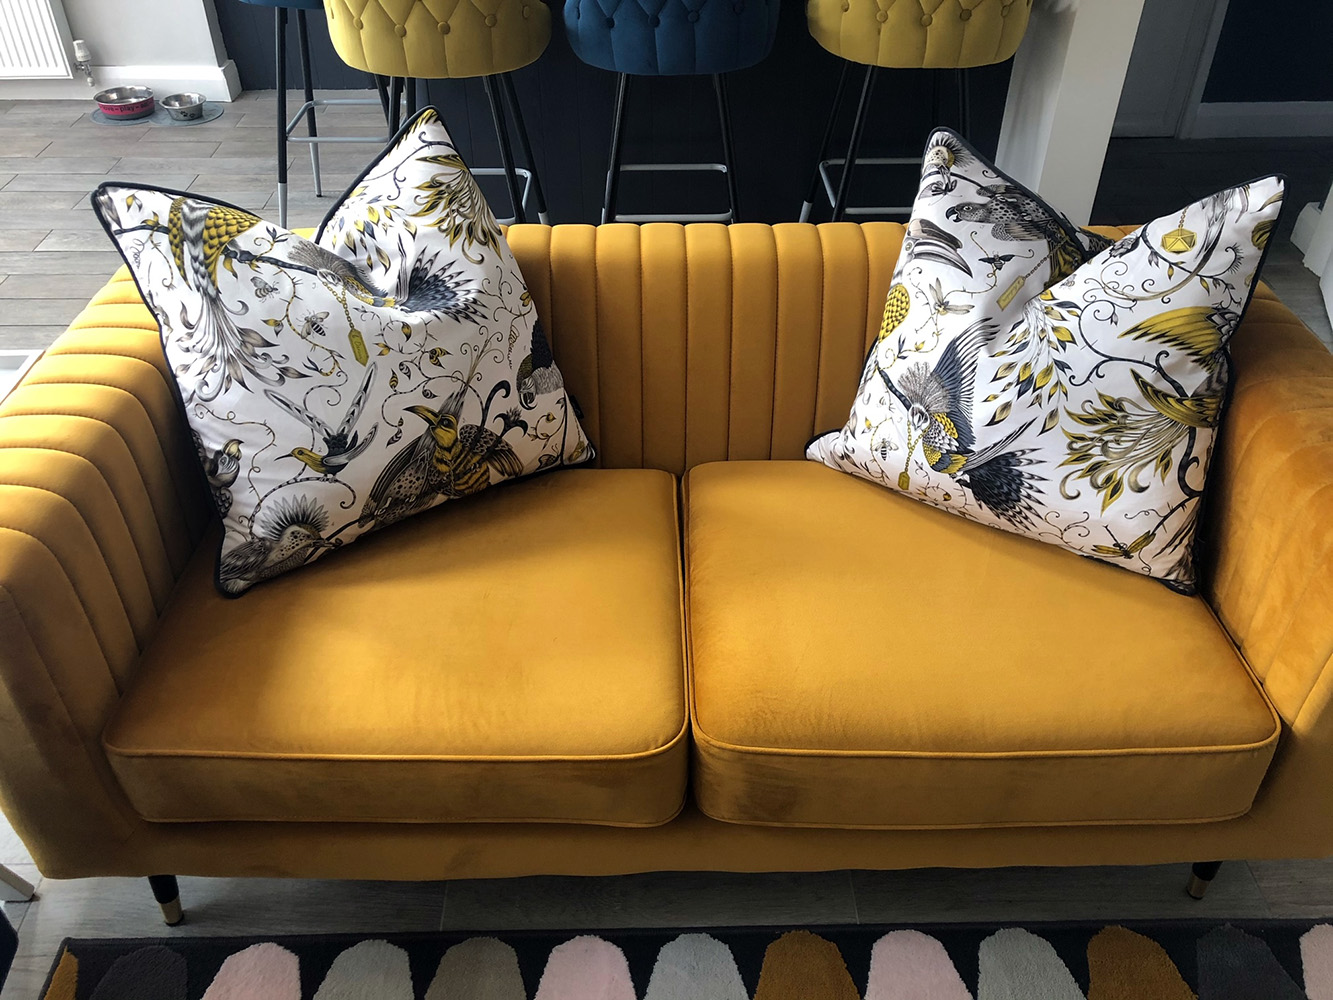 Navy blue armchair and yellow Slender sofa